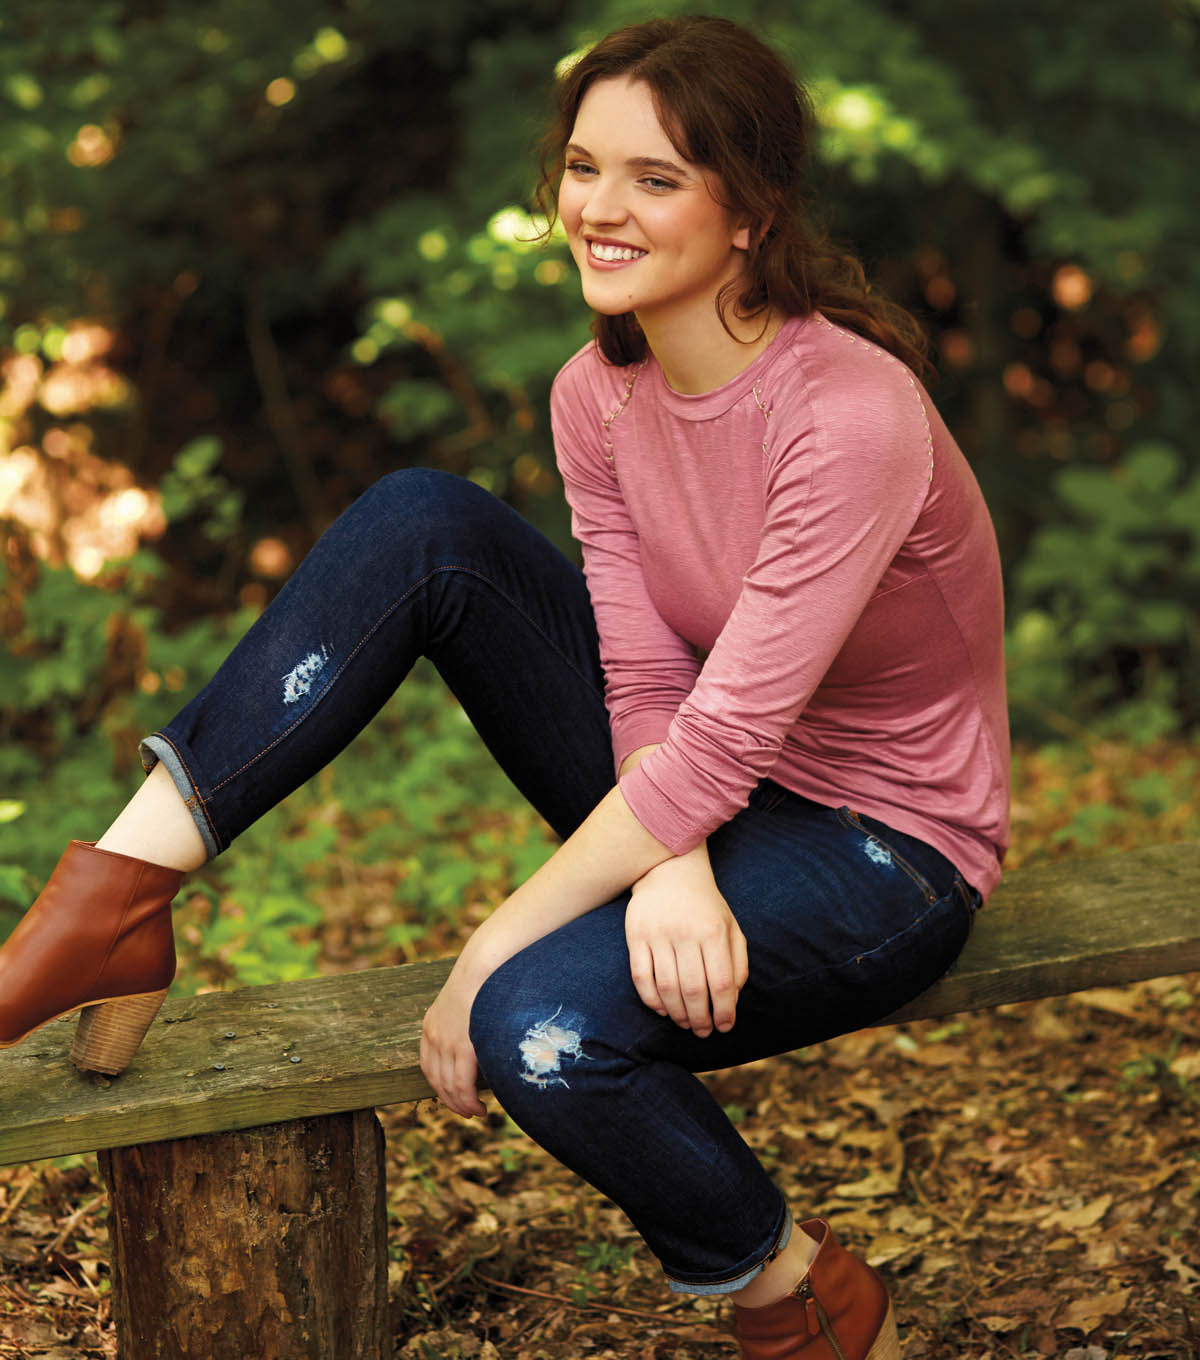 Get the Look: Tips for Sewing with Knits and Distressing Jeans